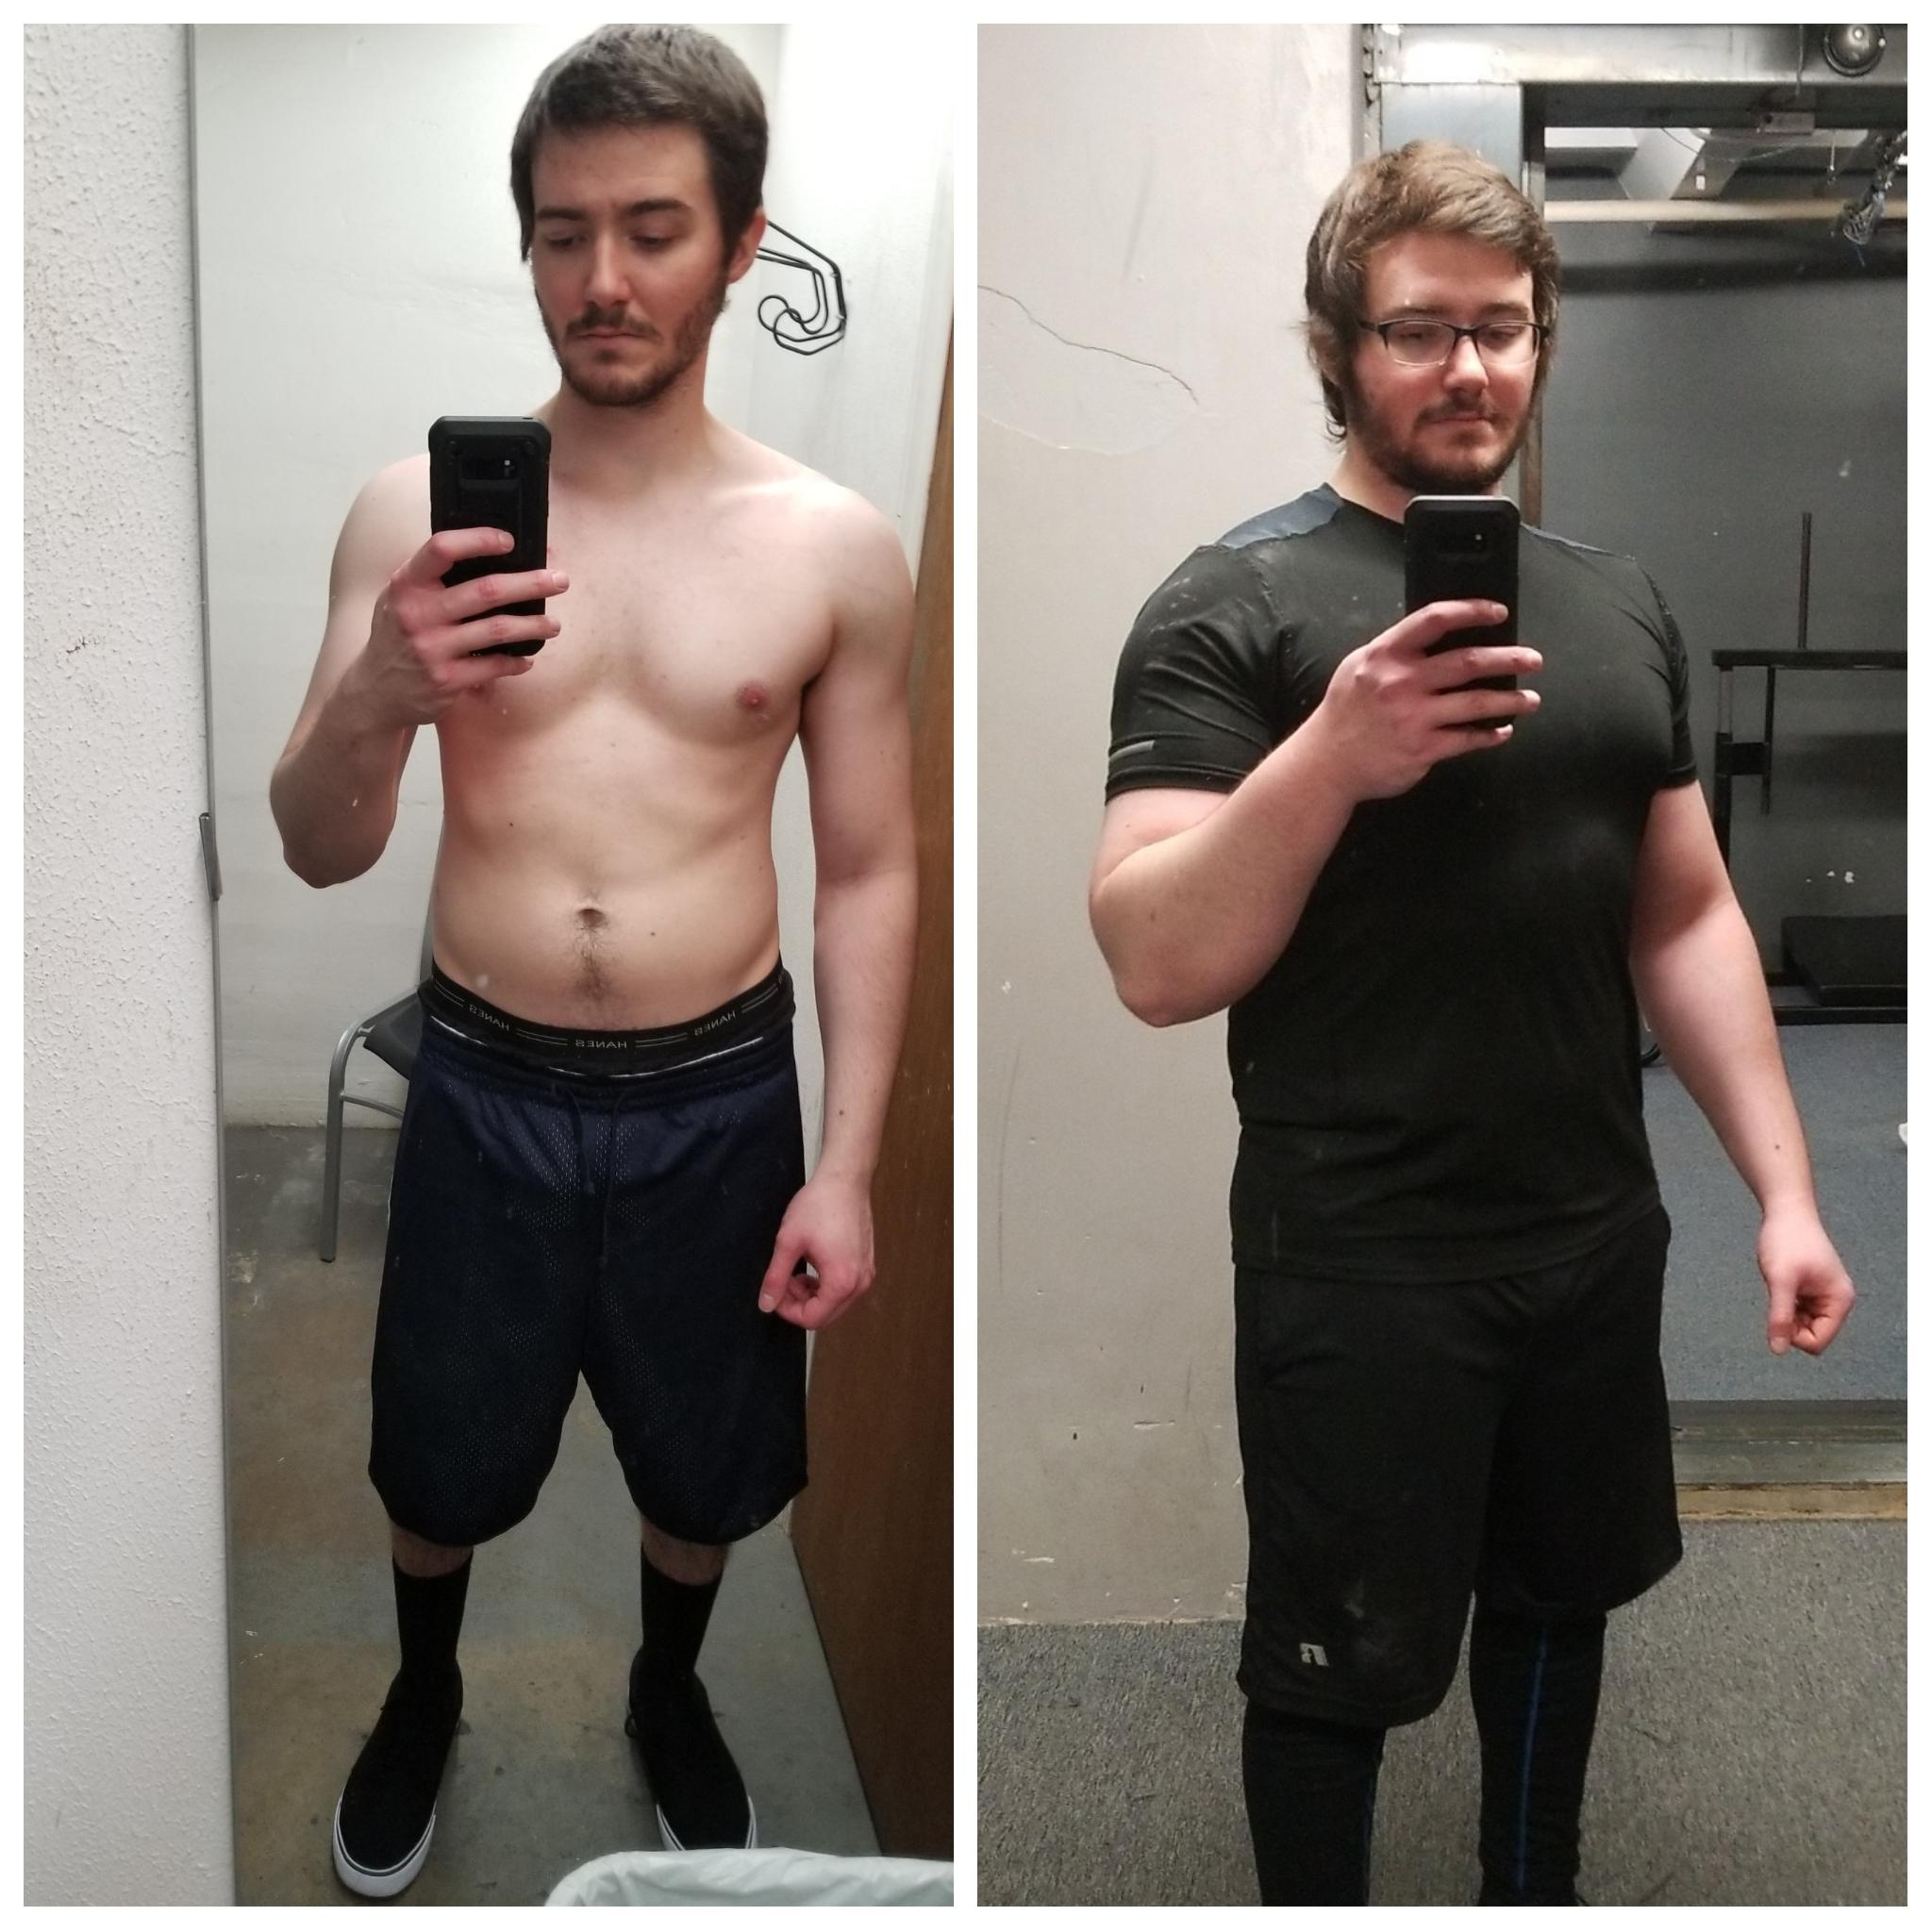 [Image] After years of depression, I picked up the sport of powerlifting. In just 12 months, life has completely changed.